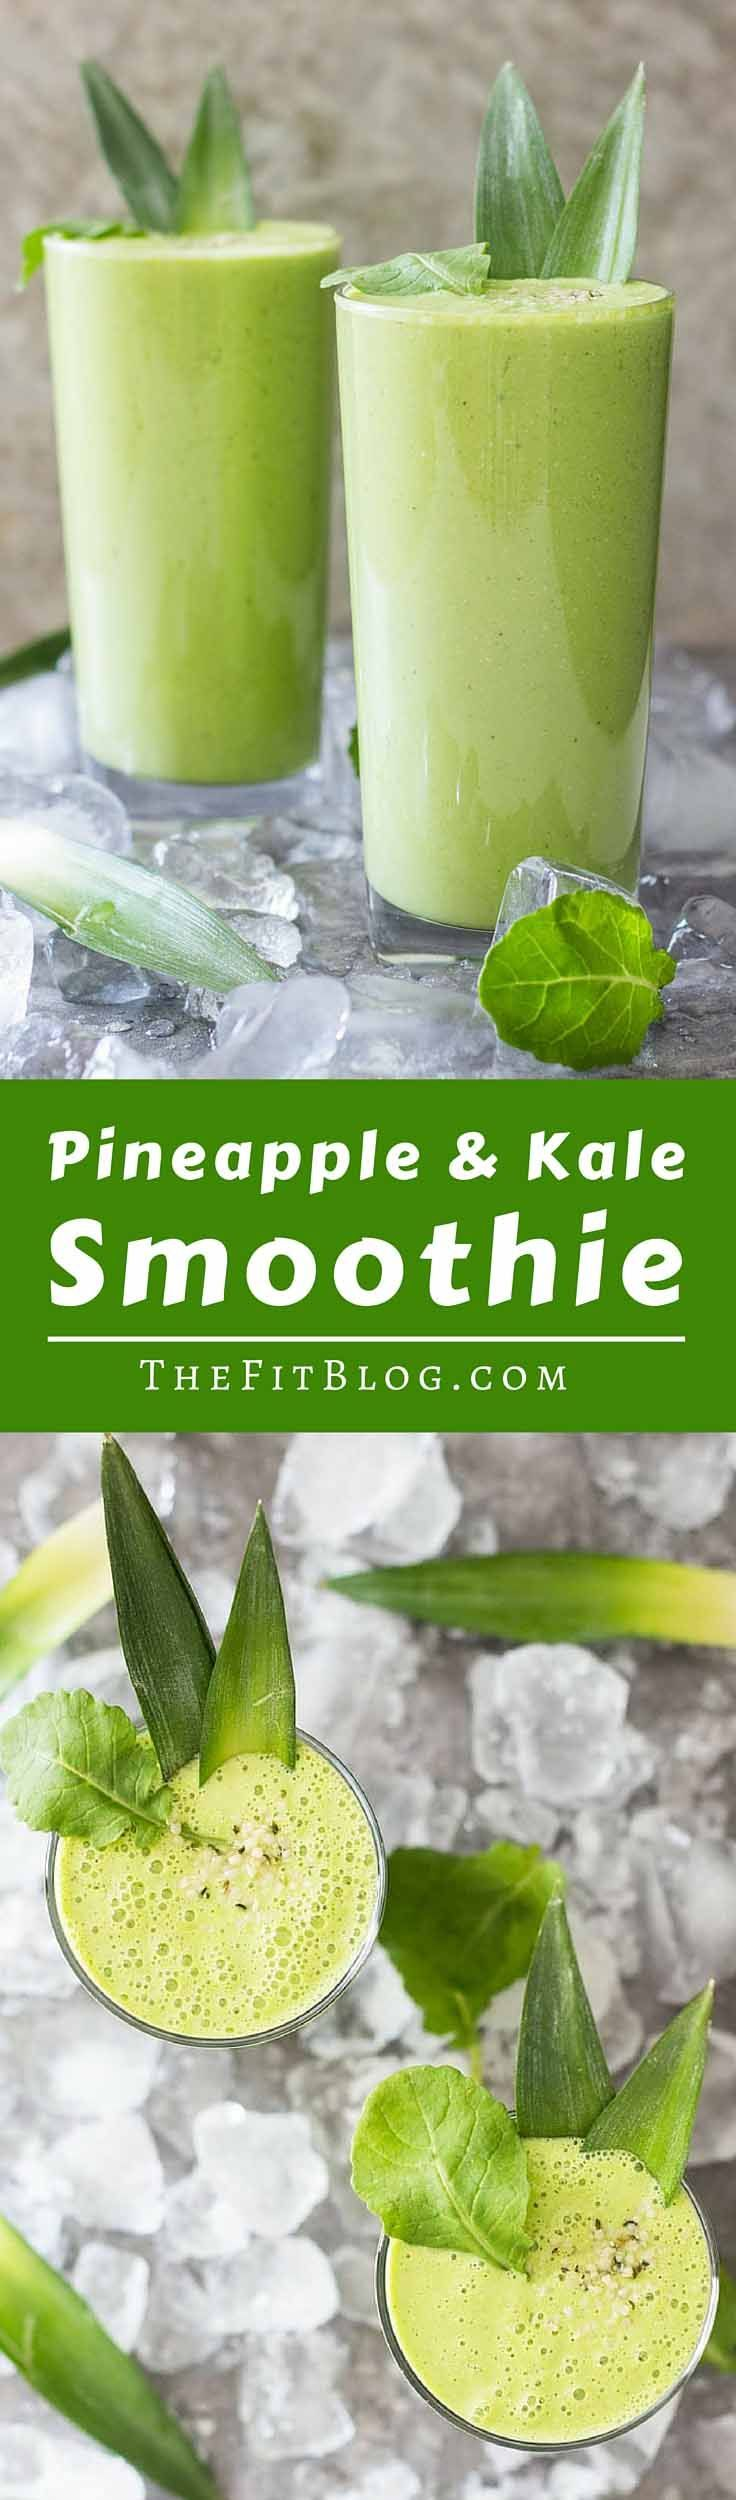 Pineapple Kale Smoothie – This delicious sugar-free smoothie only has 200 calories for a very large serving. Perfect for a workout shake or to cool off in the summer heat.